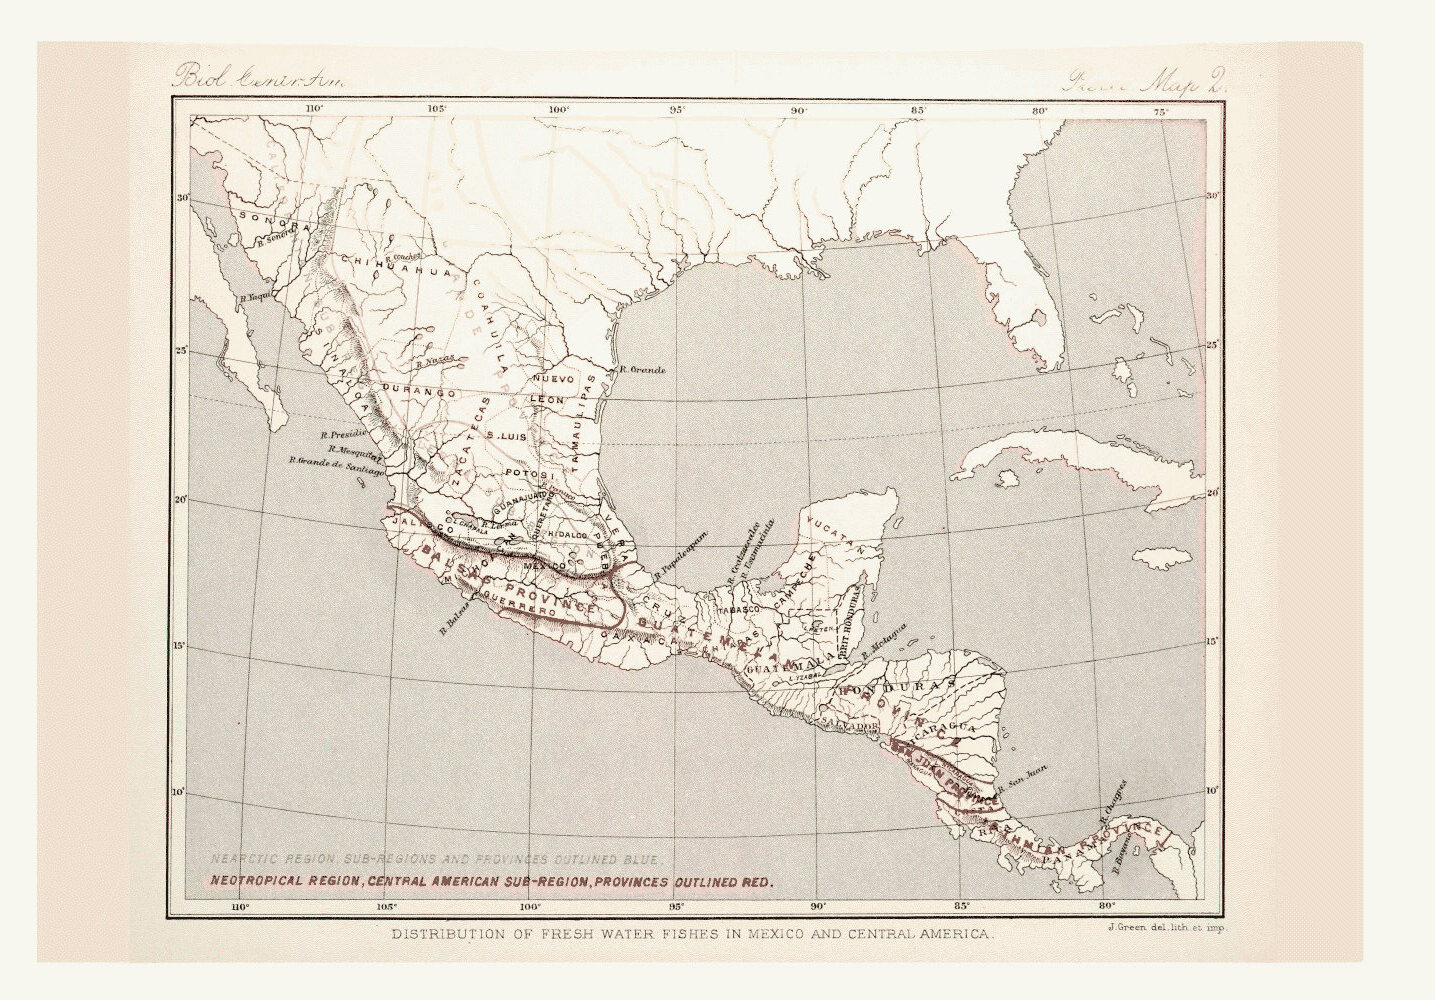 Map of Central America and Mexico,  Image number:bca_05_00_00_299